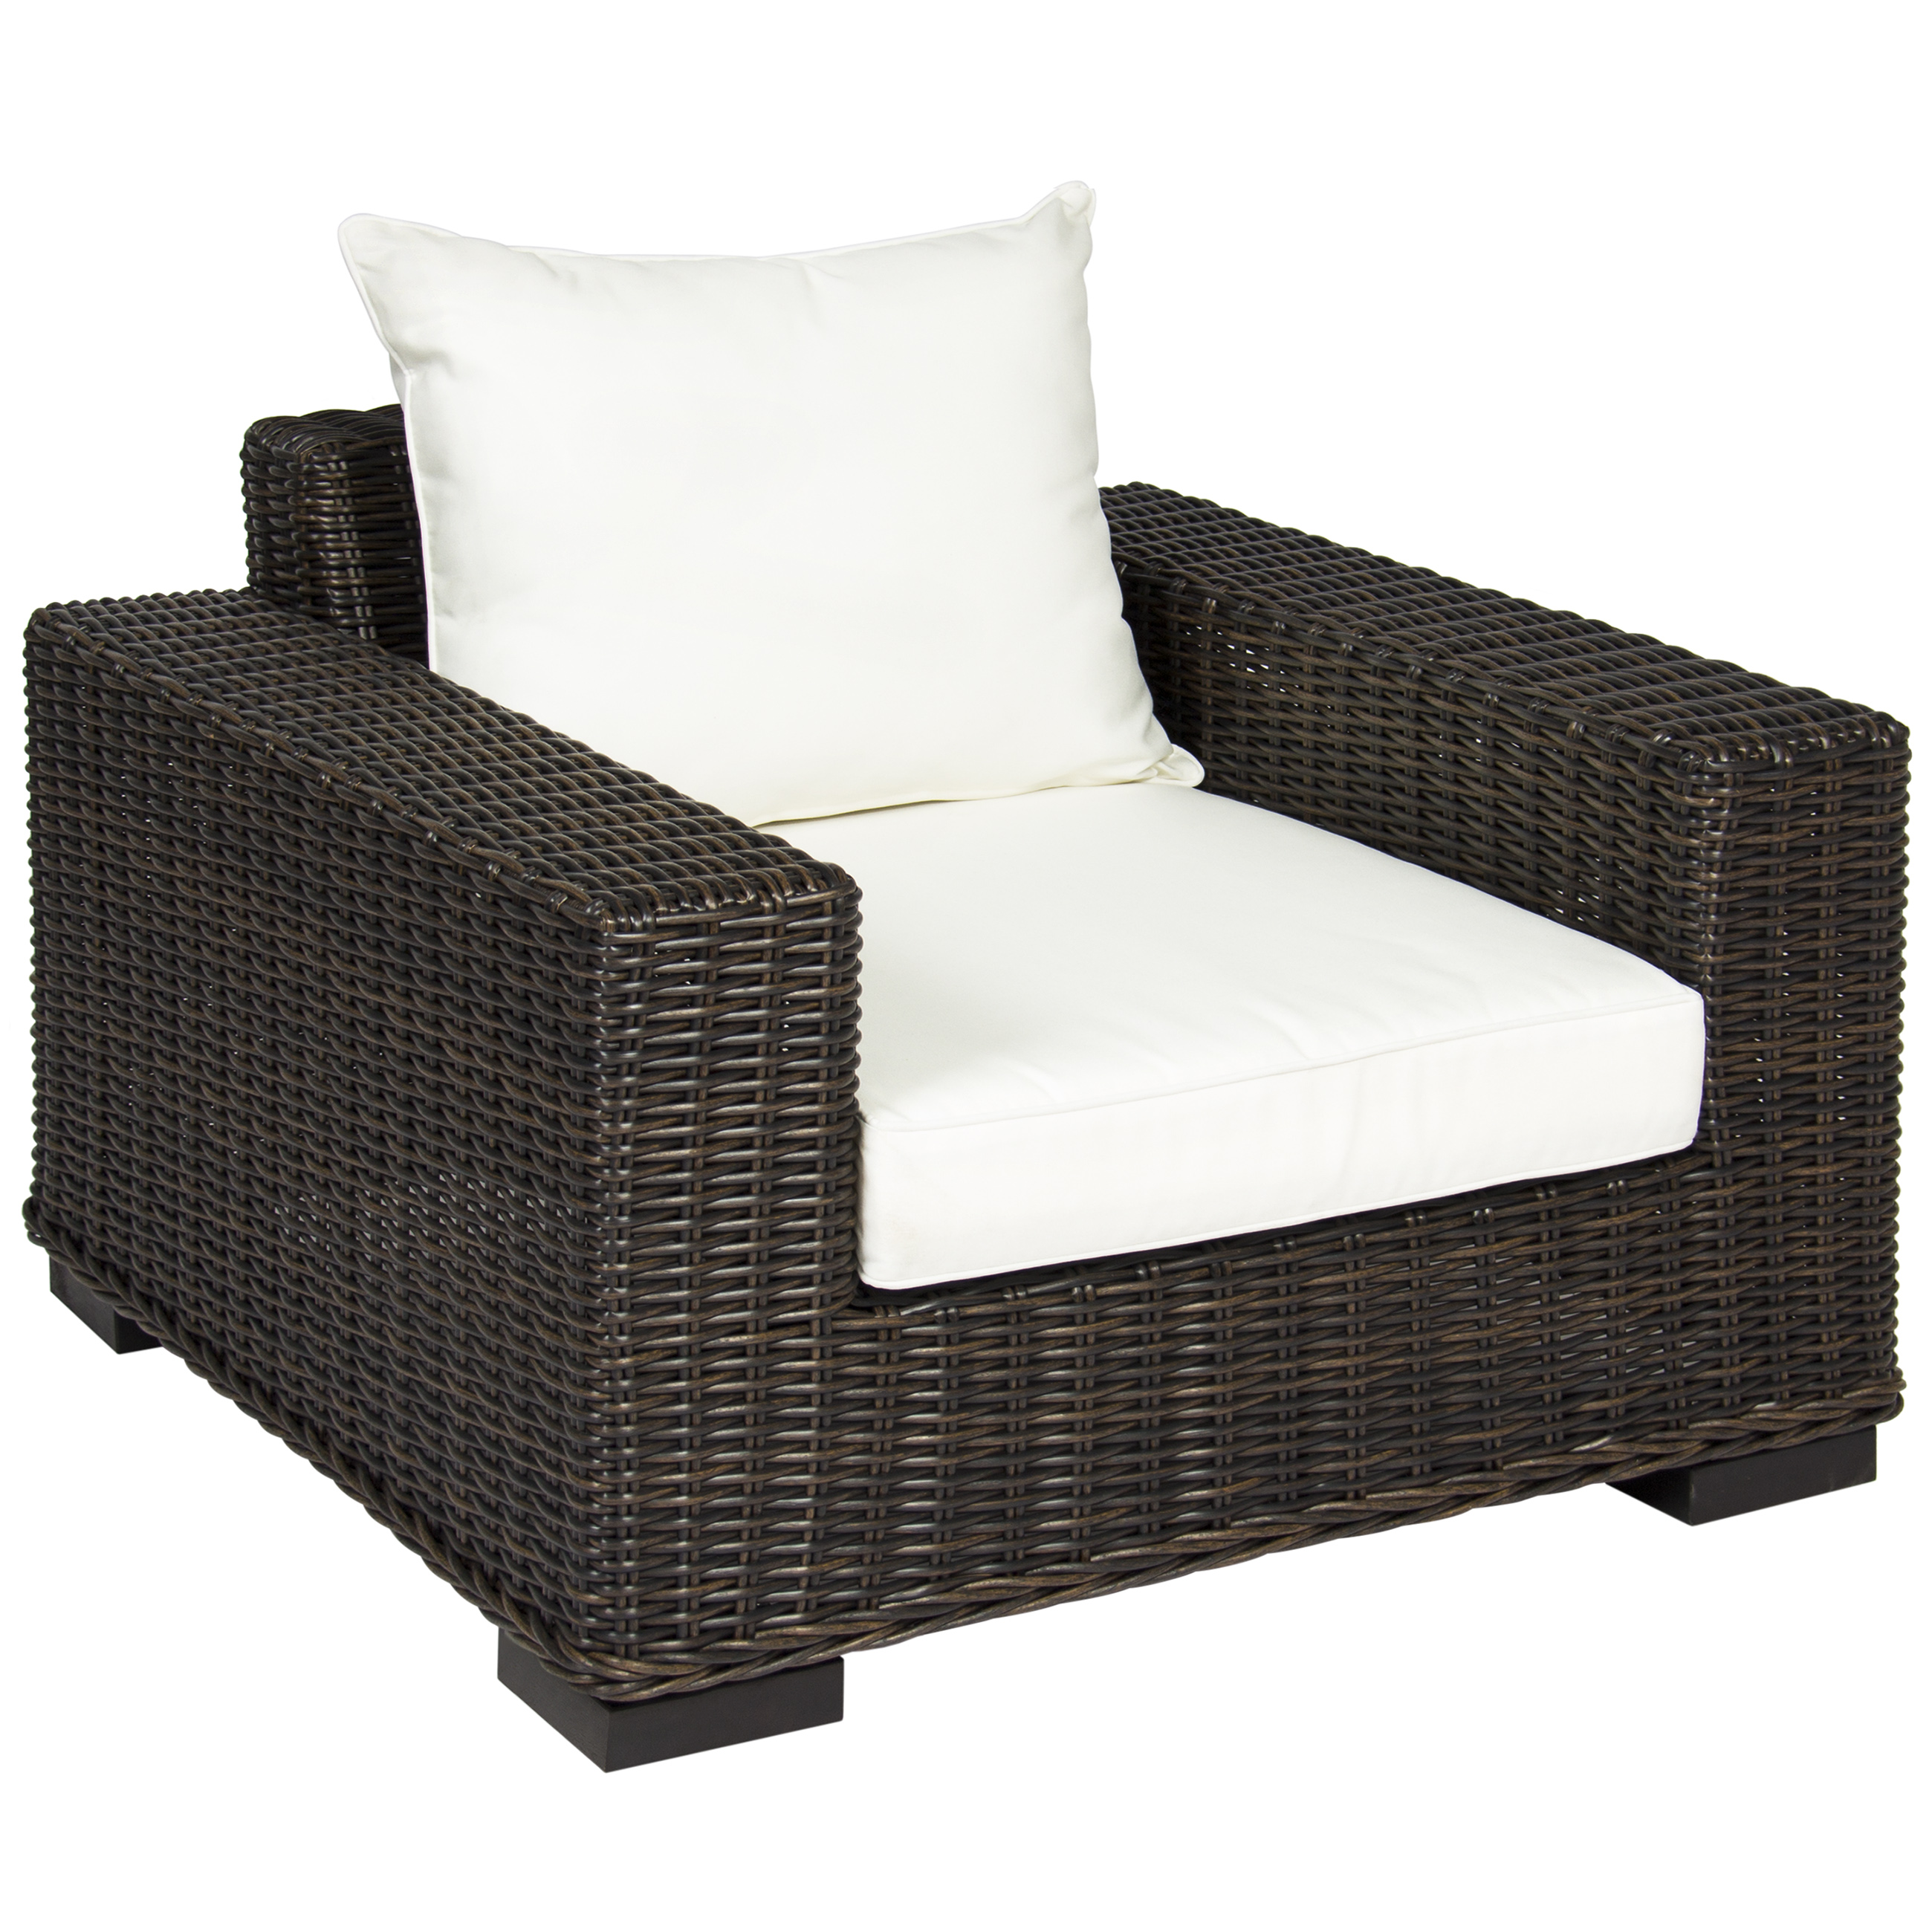 Beau Best Choice Products Oversized Outdoor Patio Wicker Club Arm Chair W/ White  Cushion   Brown